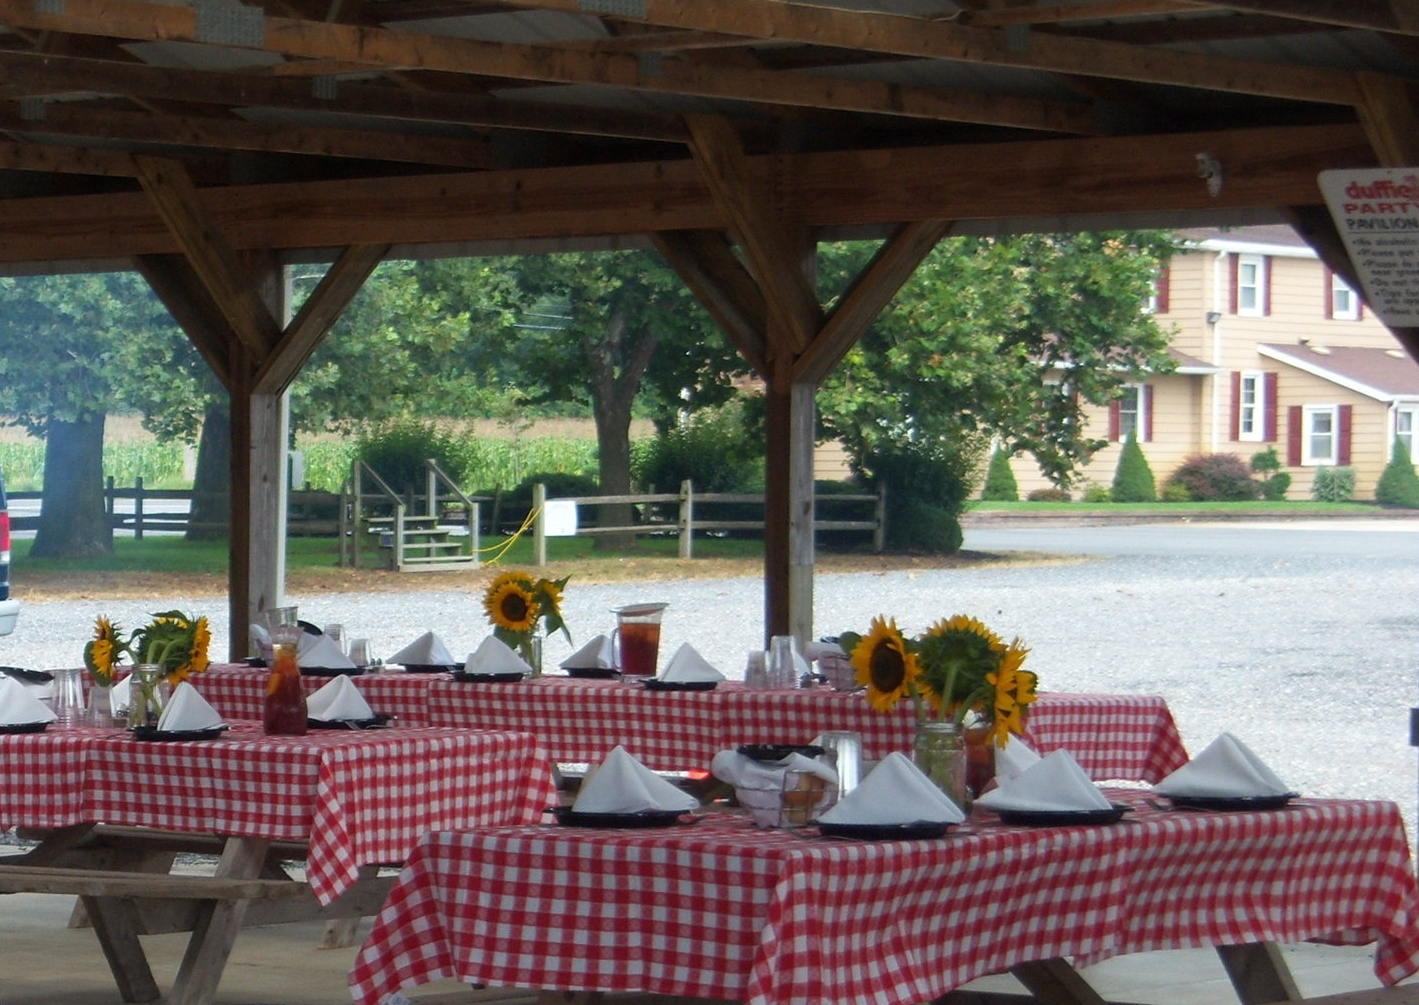 Event Rental #5   $200 rental fee for a two-hour time slot includes 1/4 section of pavilion space rental only. Bring your own decor.  Contact us for event tips, party food orders, celebration cakes, baked goods and other party needs.